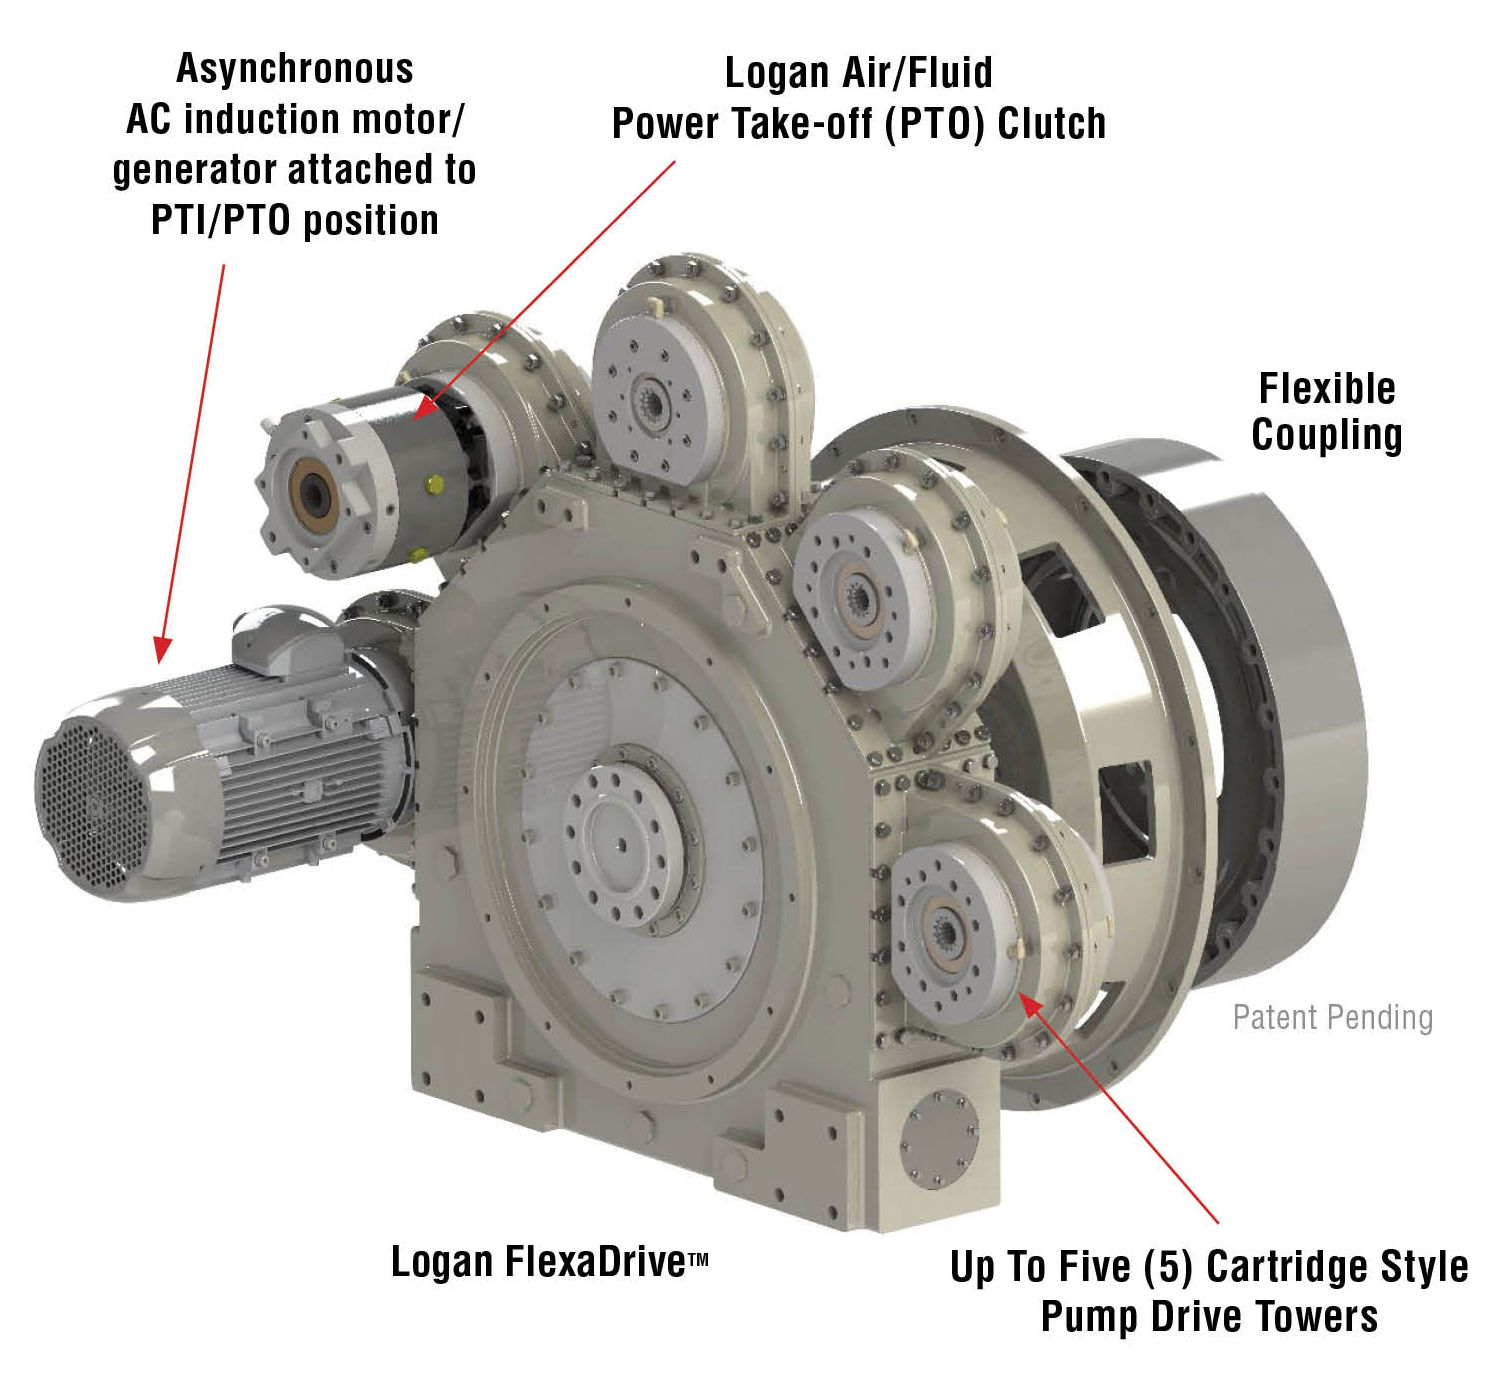 Logan FlexaDriveTM Multiple Pump Drive Systems